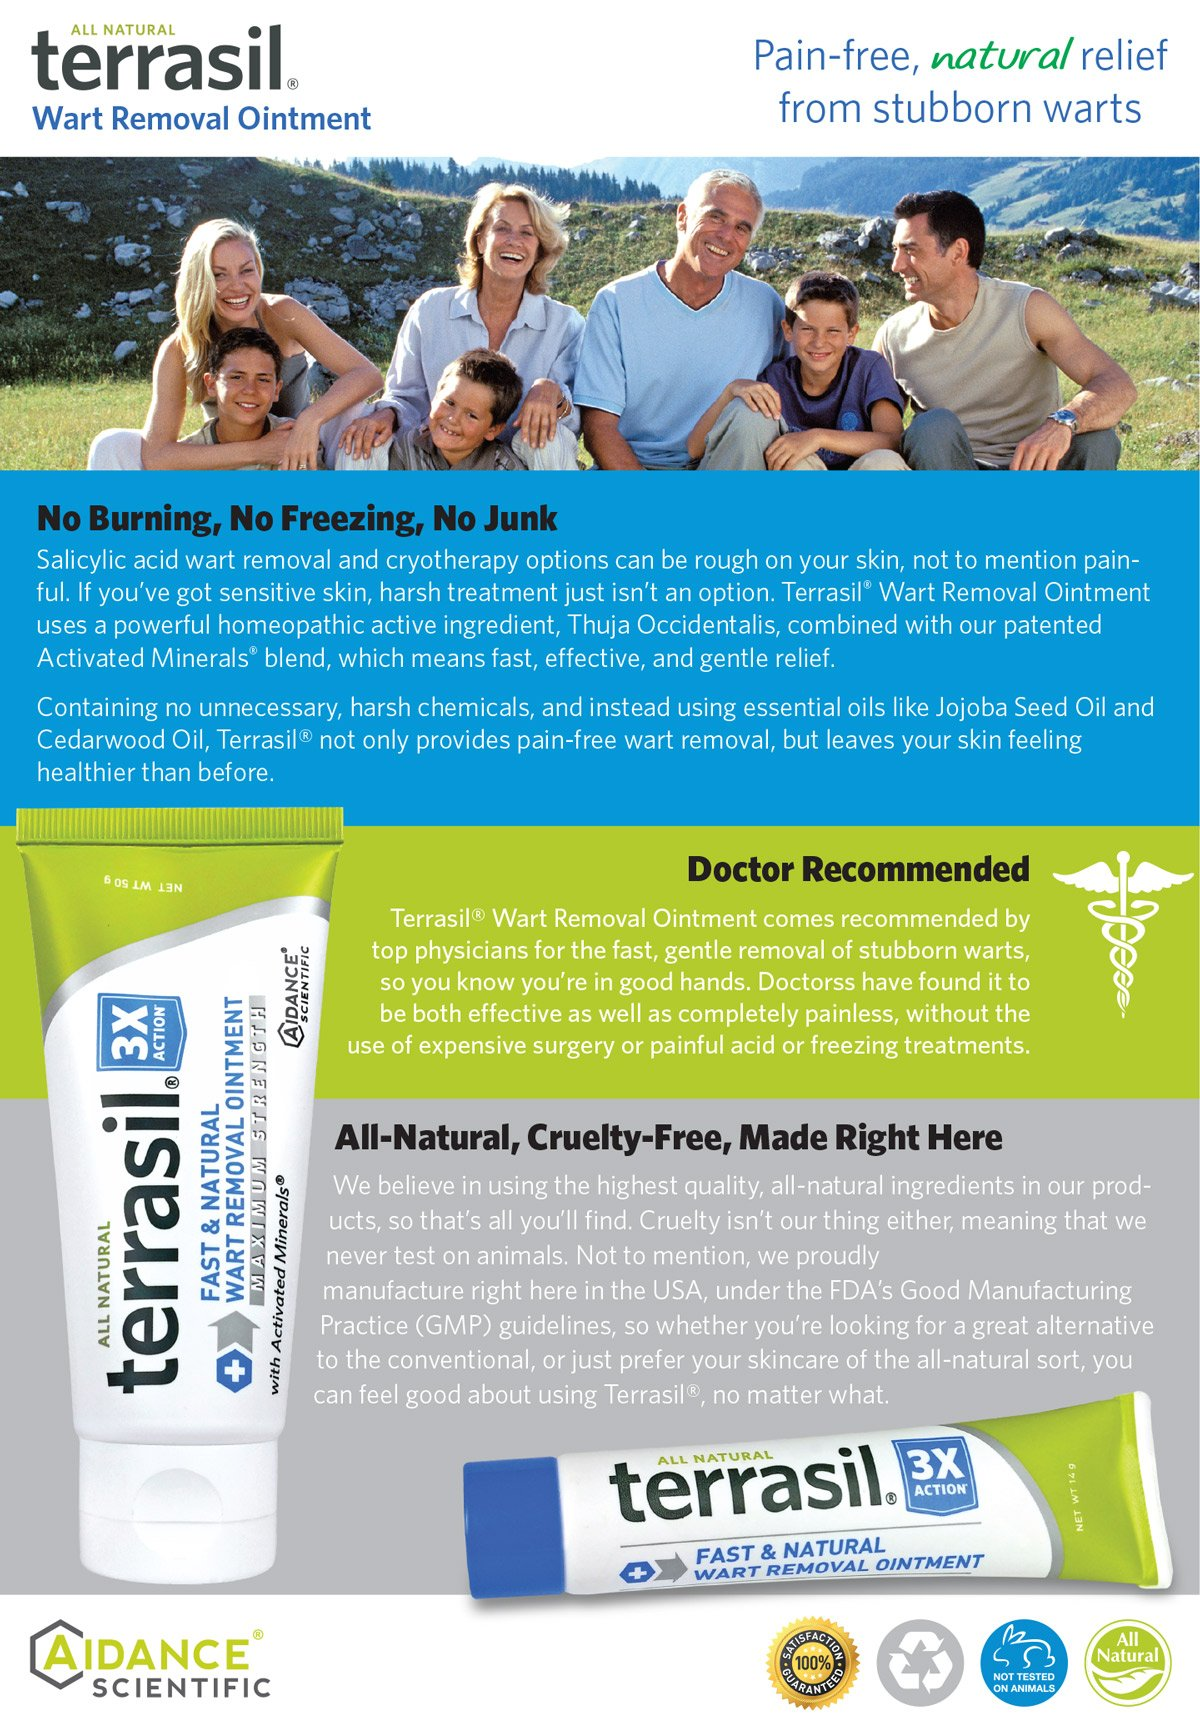 Wart Remover - Safe for Sensitive Skin Dr Recommended 100% Guaranteed All Natural Pain Free Salicylic Acid Free Patented Treatment for Plantar Genital Facial Warts by Terrasil by Aidance Skincare & Topical Solutions (Image #7)